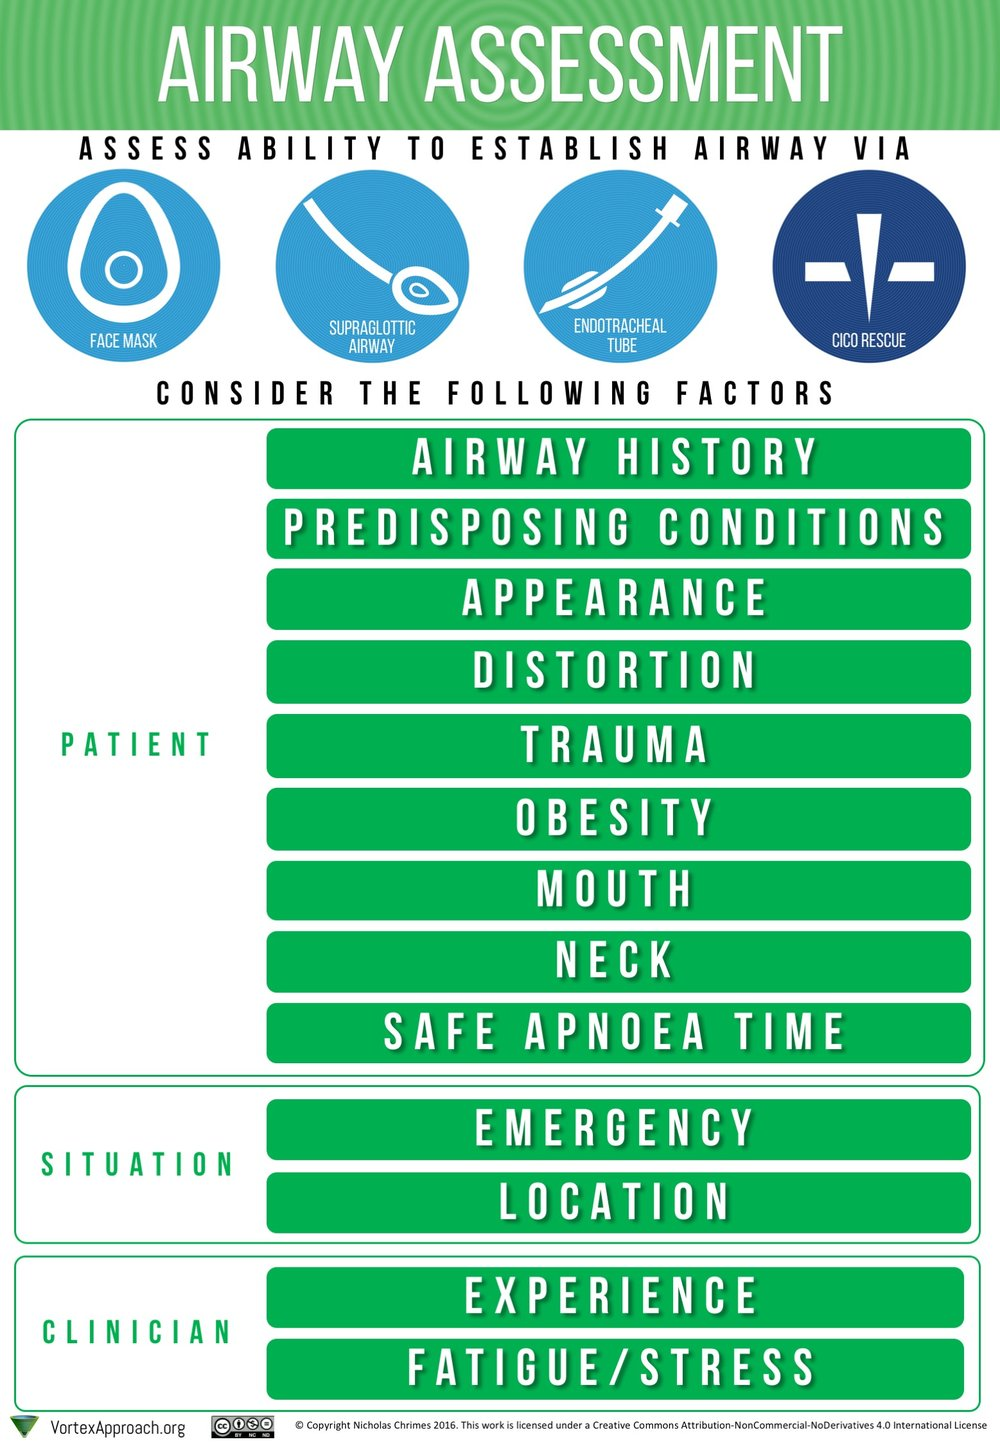 Airway Assessment Tool